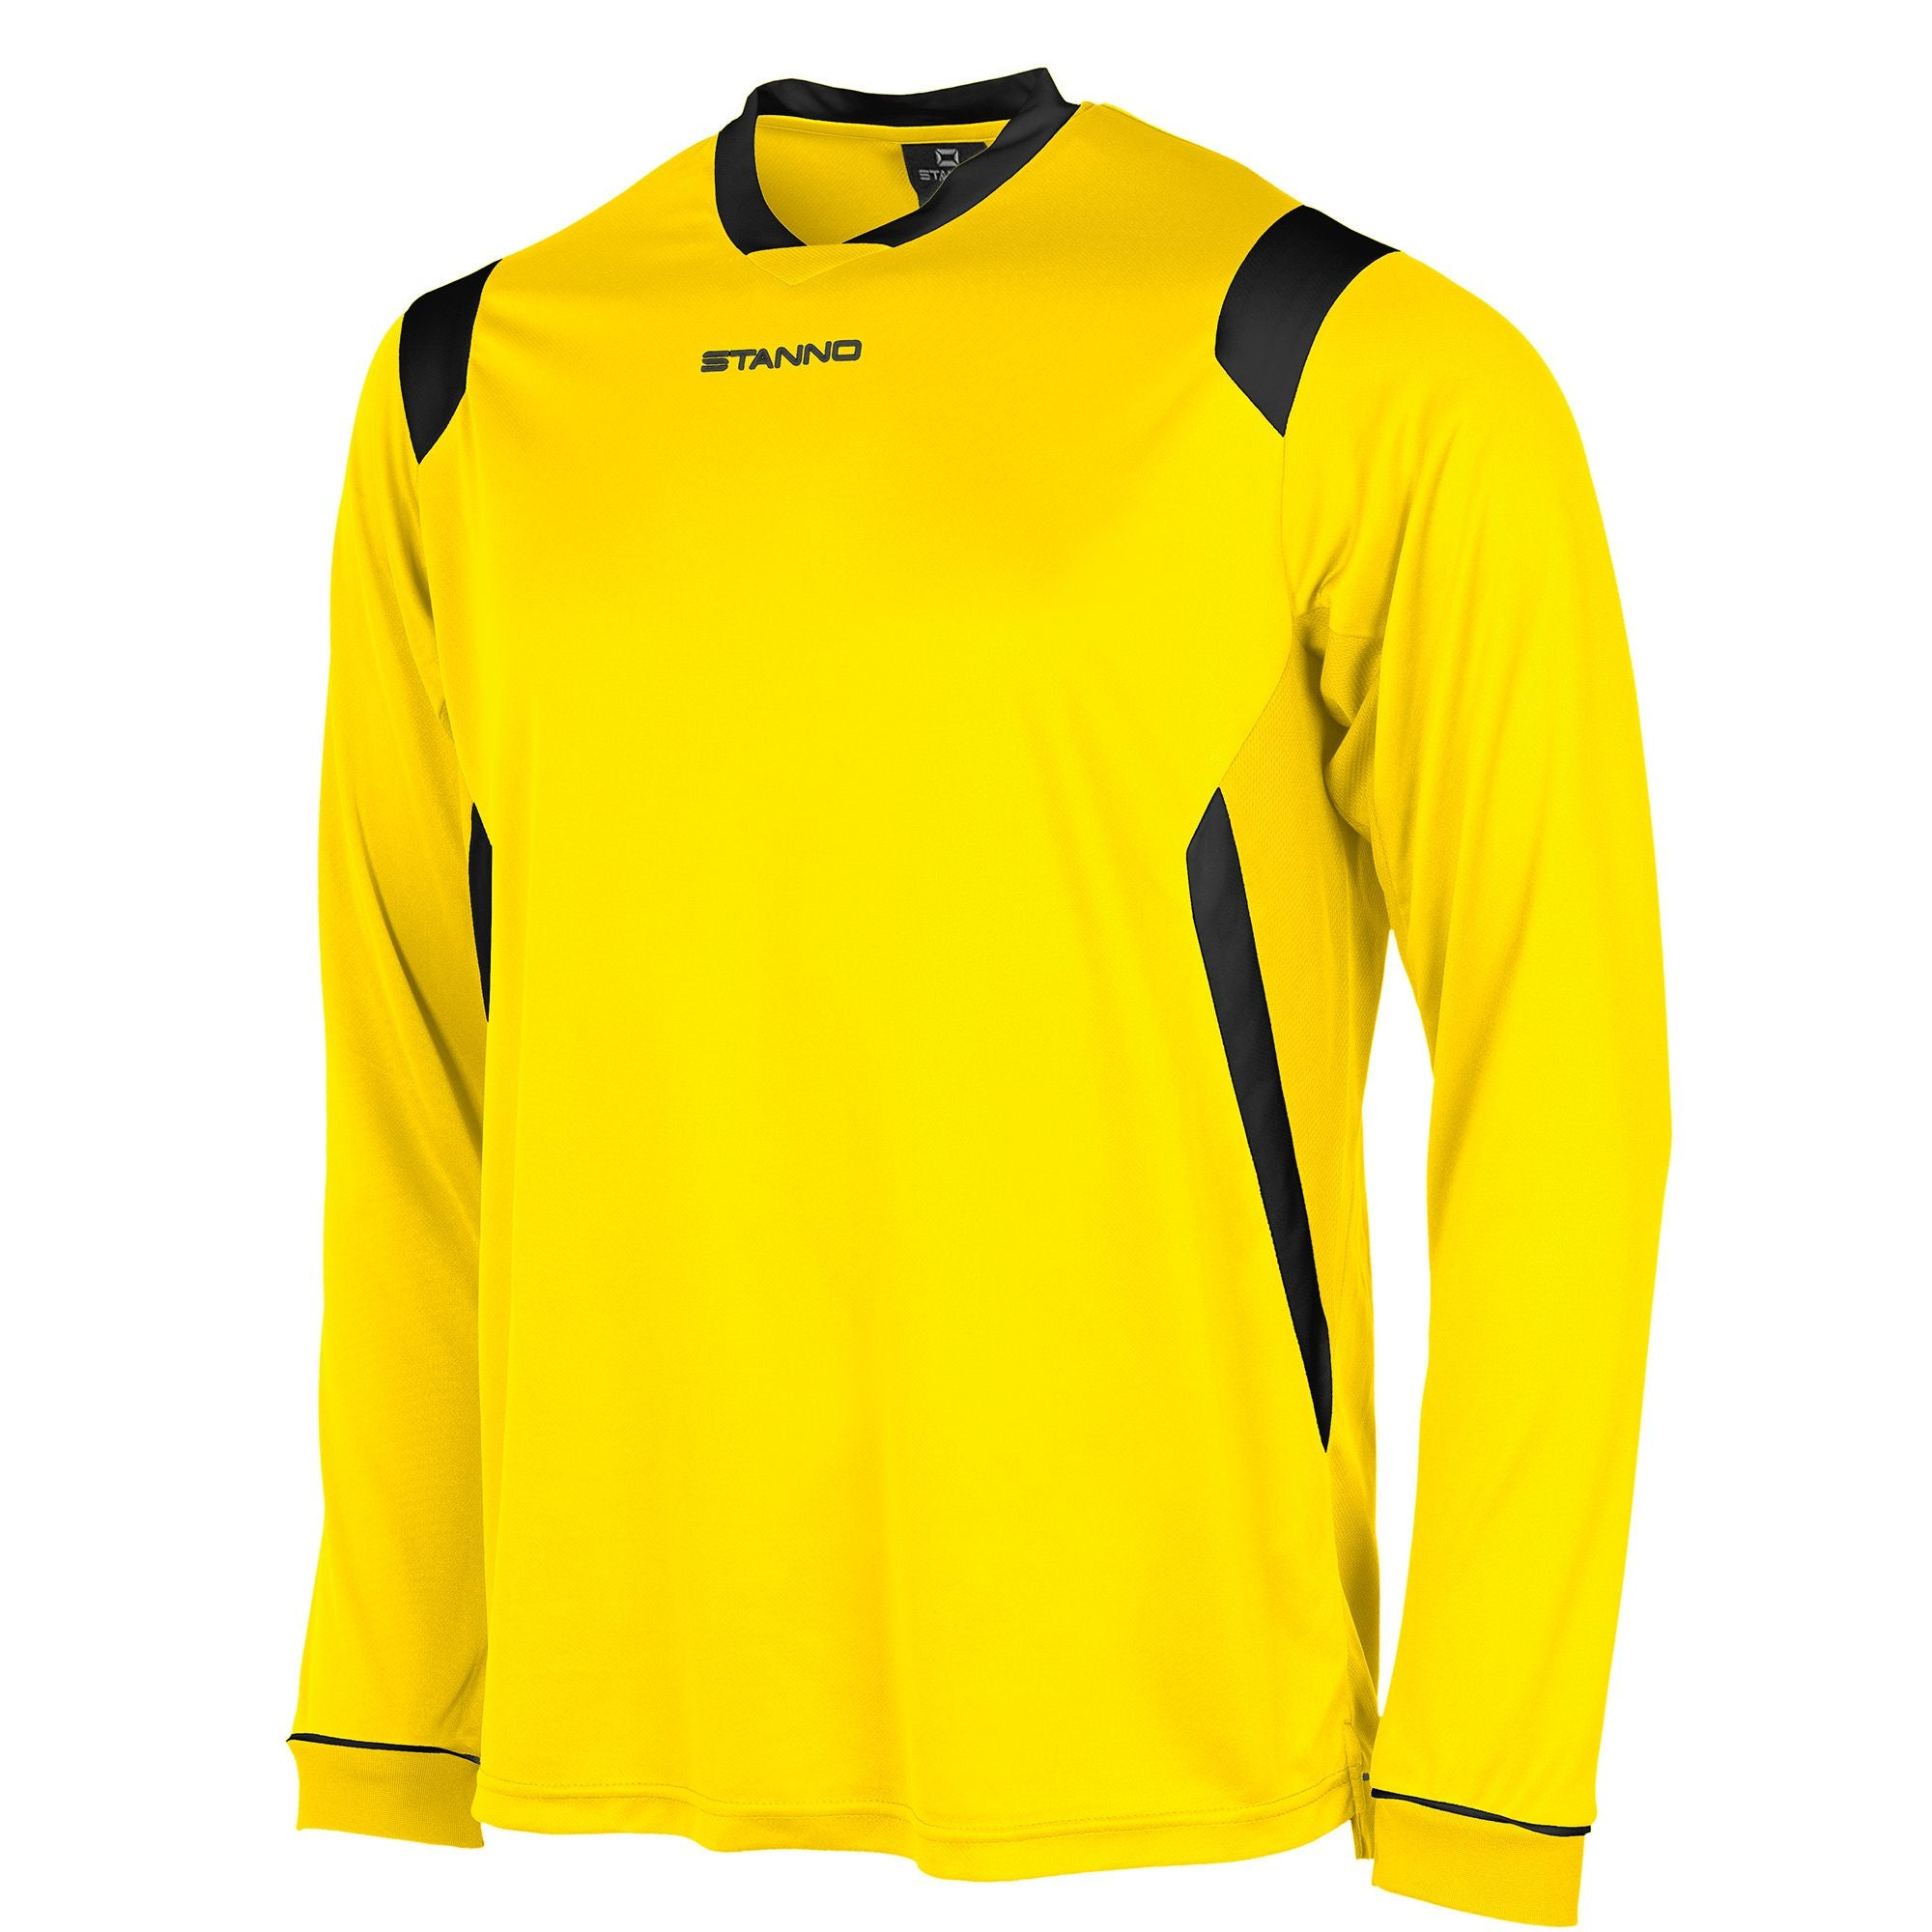 Stanno Arezzo long sleeved shirt in yellow with black contrast collar, and stripe detail on shoulders and sides.